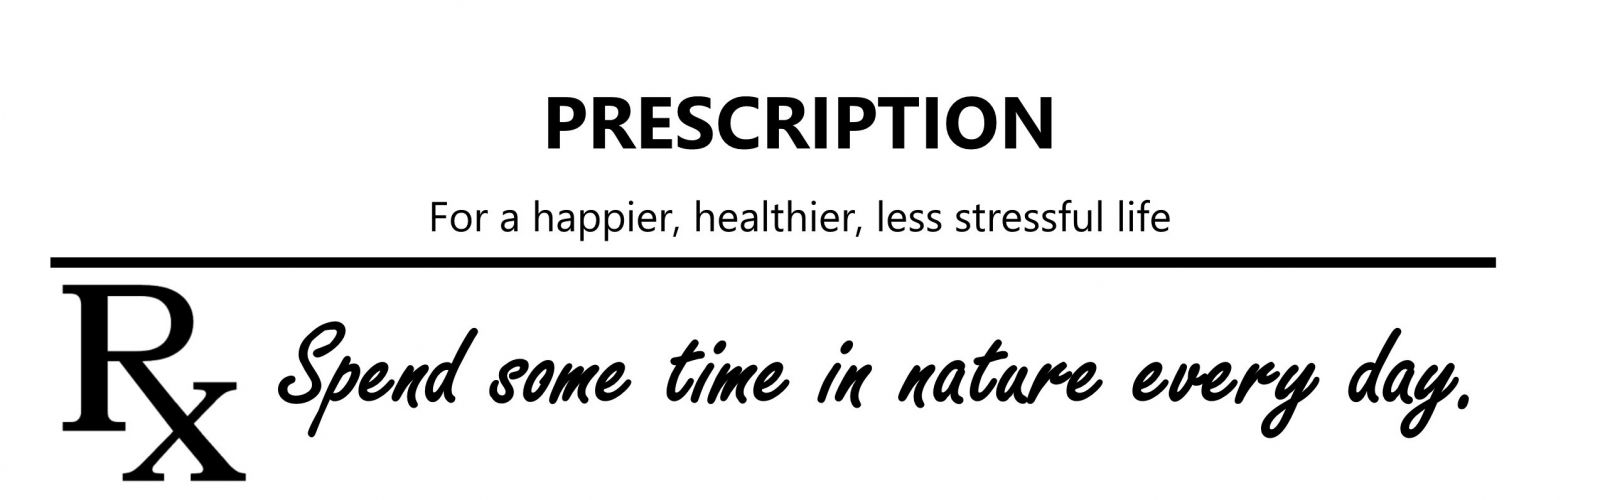 nature prescription